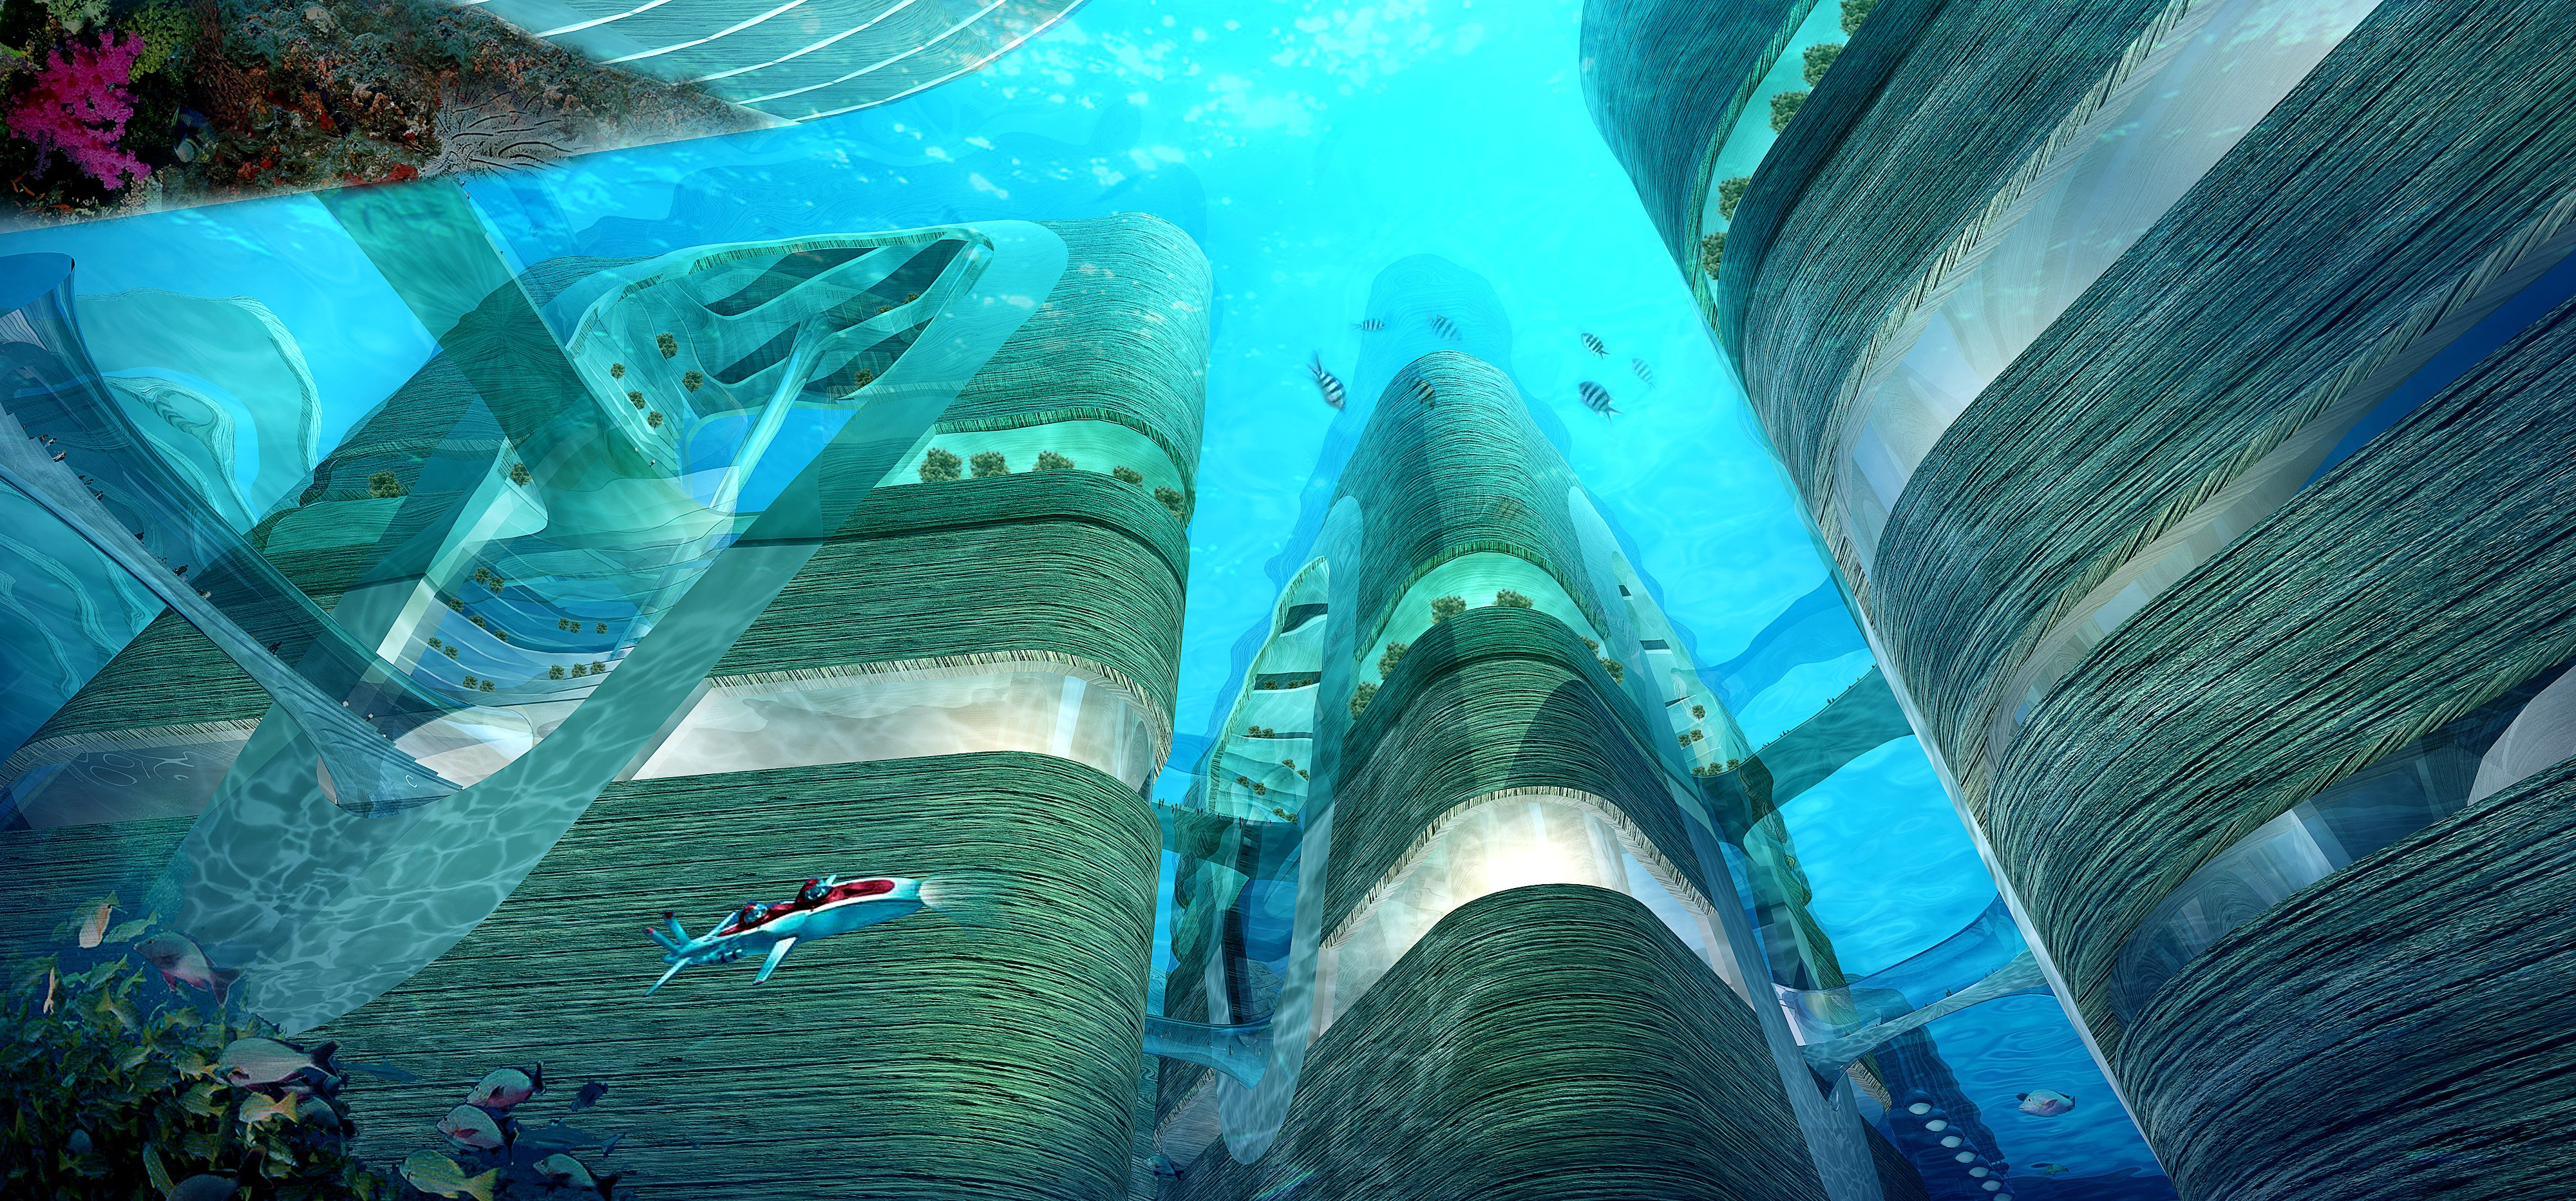 Images from ATDesignOffice Ltd. Atlantis  at last    See China s designs for underwater city   Virgin